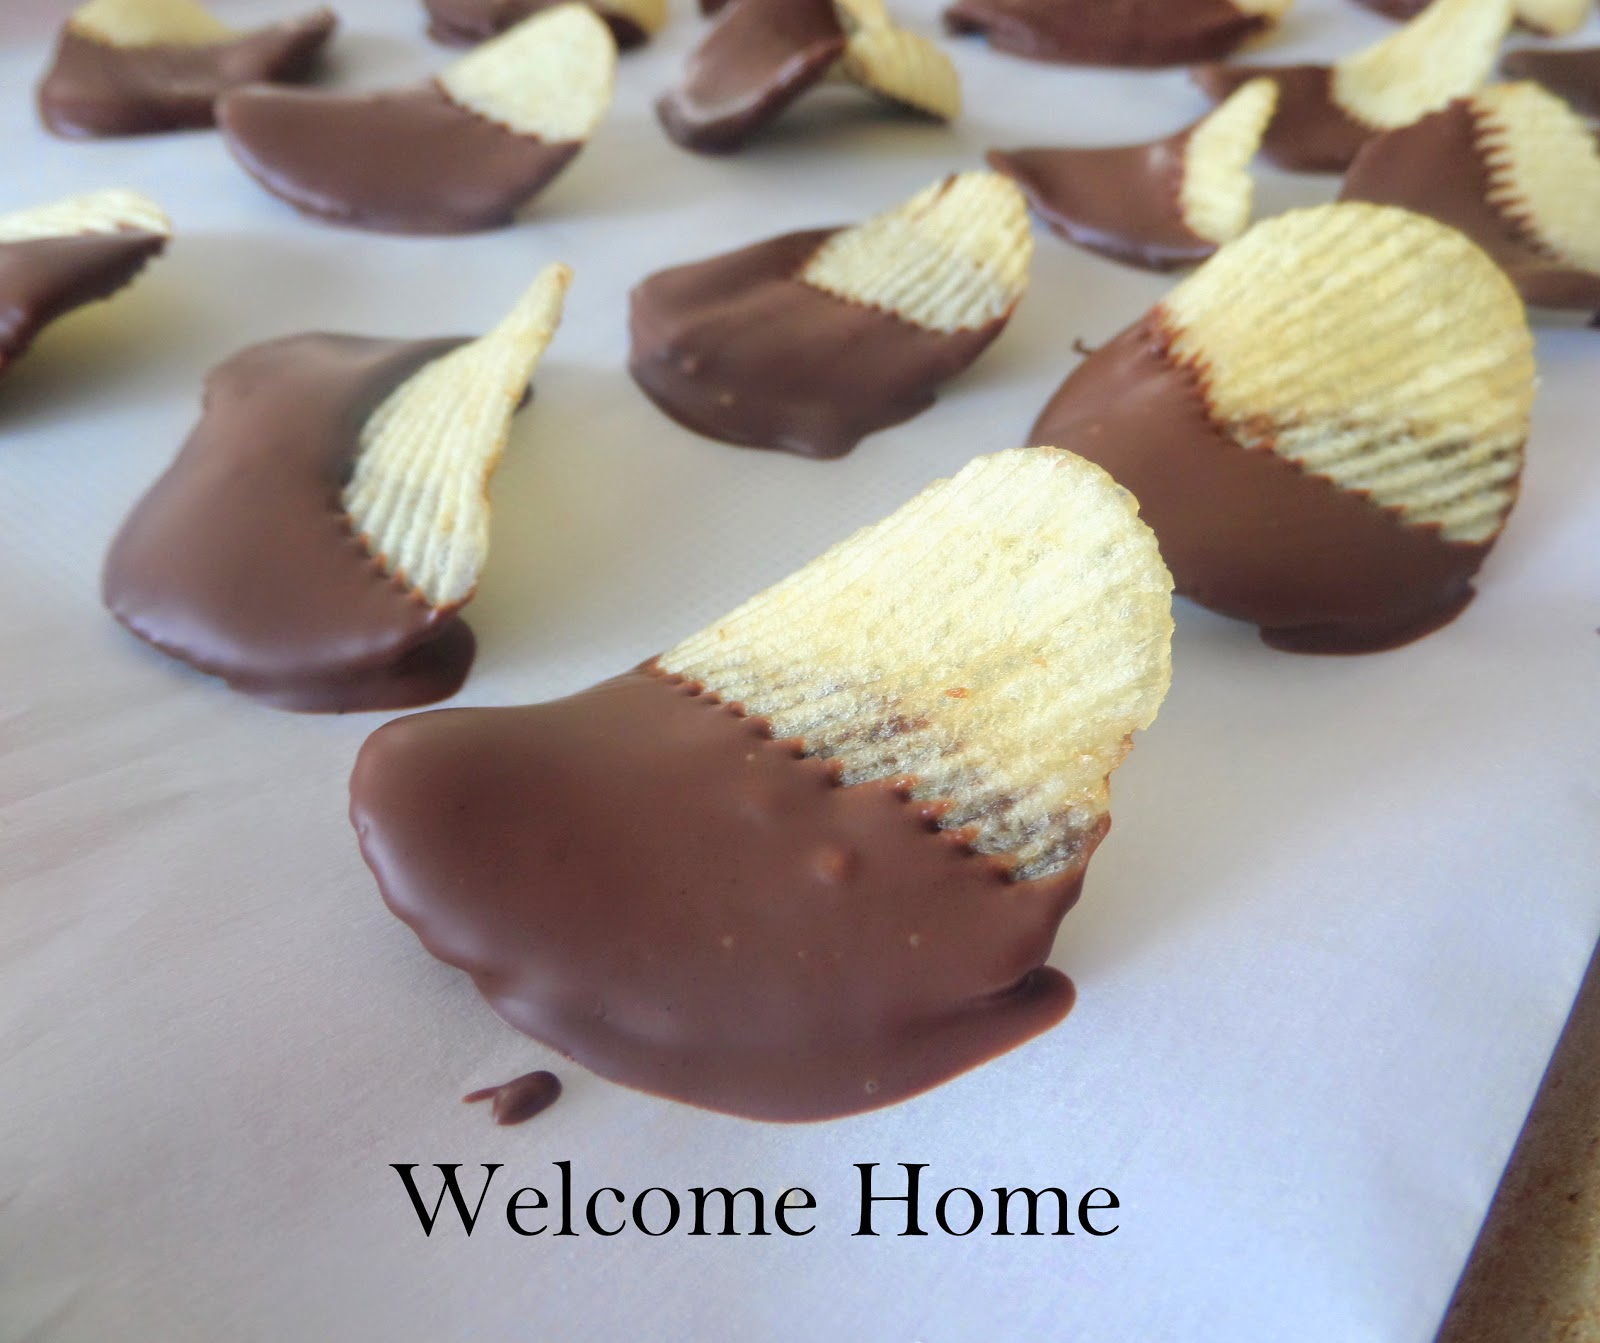 Welcome Home Blog: Chocolate Covered Potato Chips